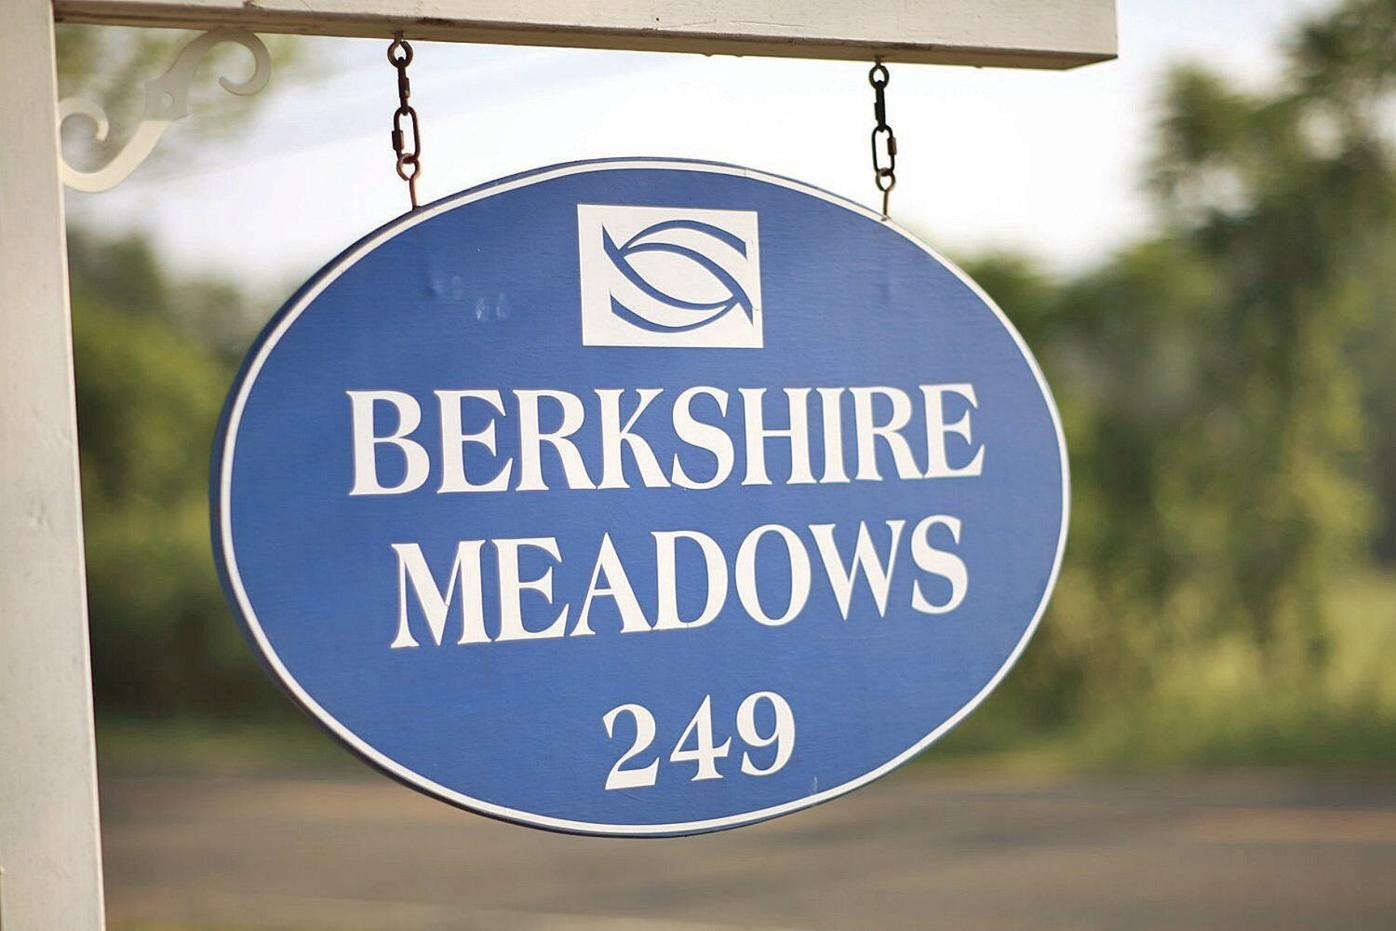 Got compassion? Berkshire Meadows has the job for you!